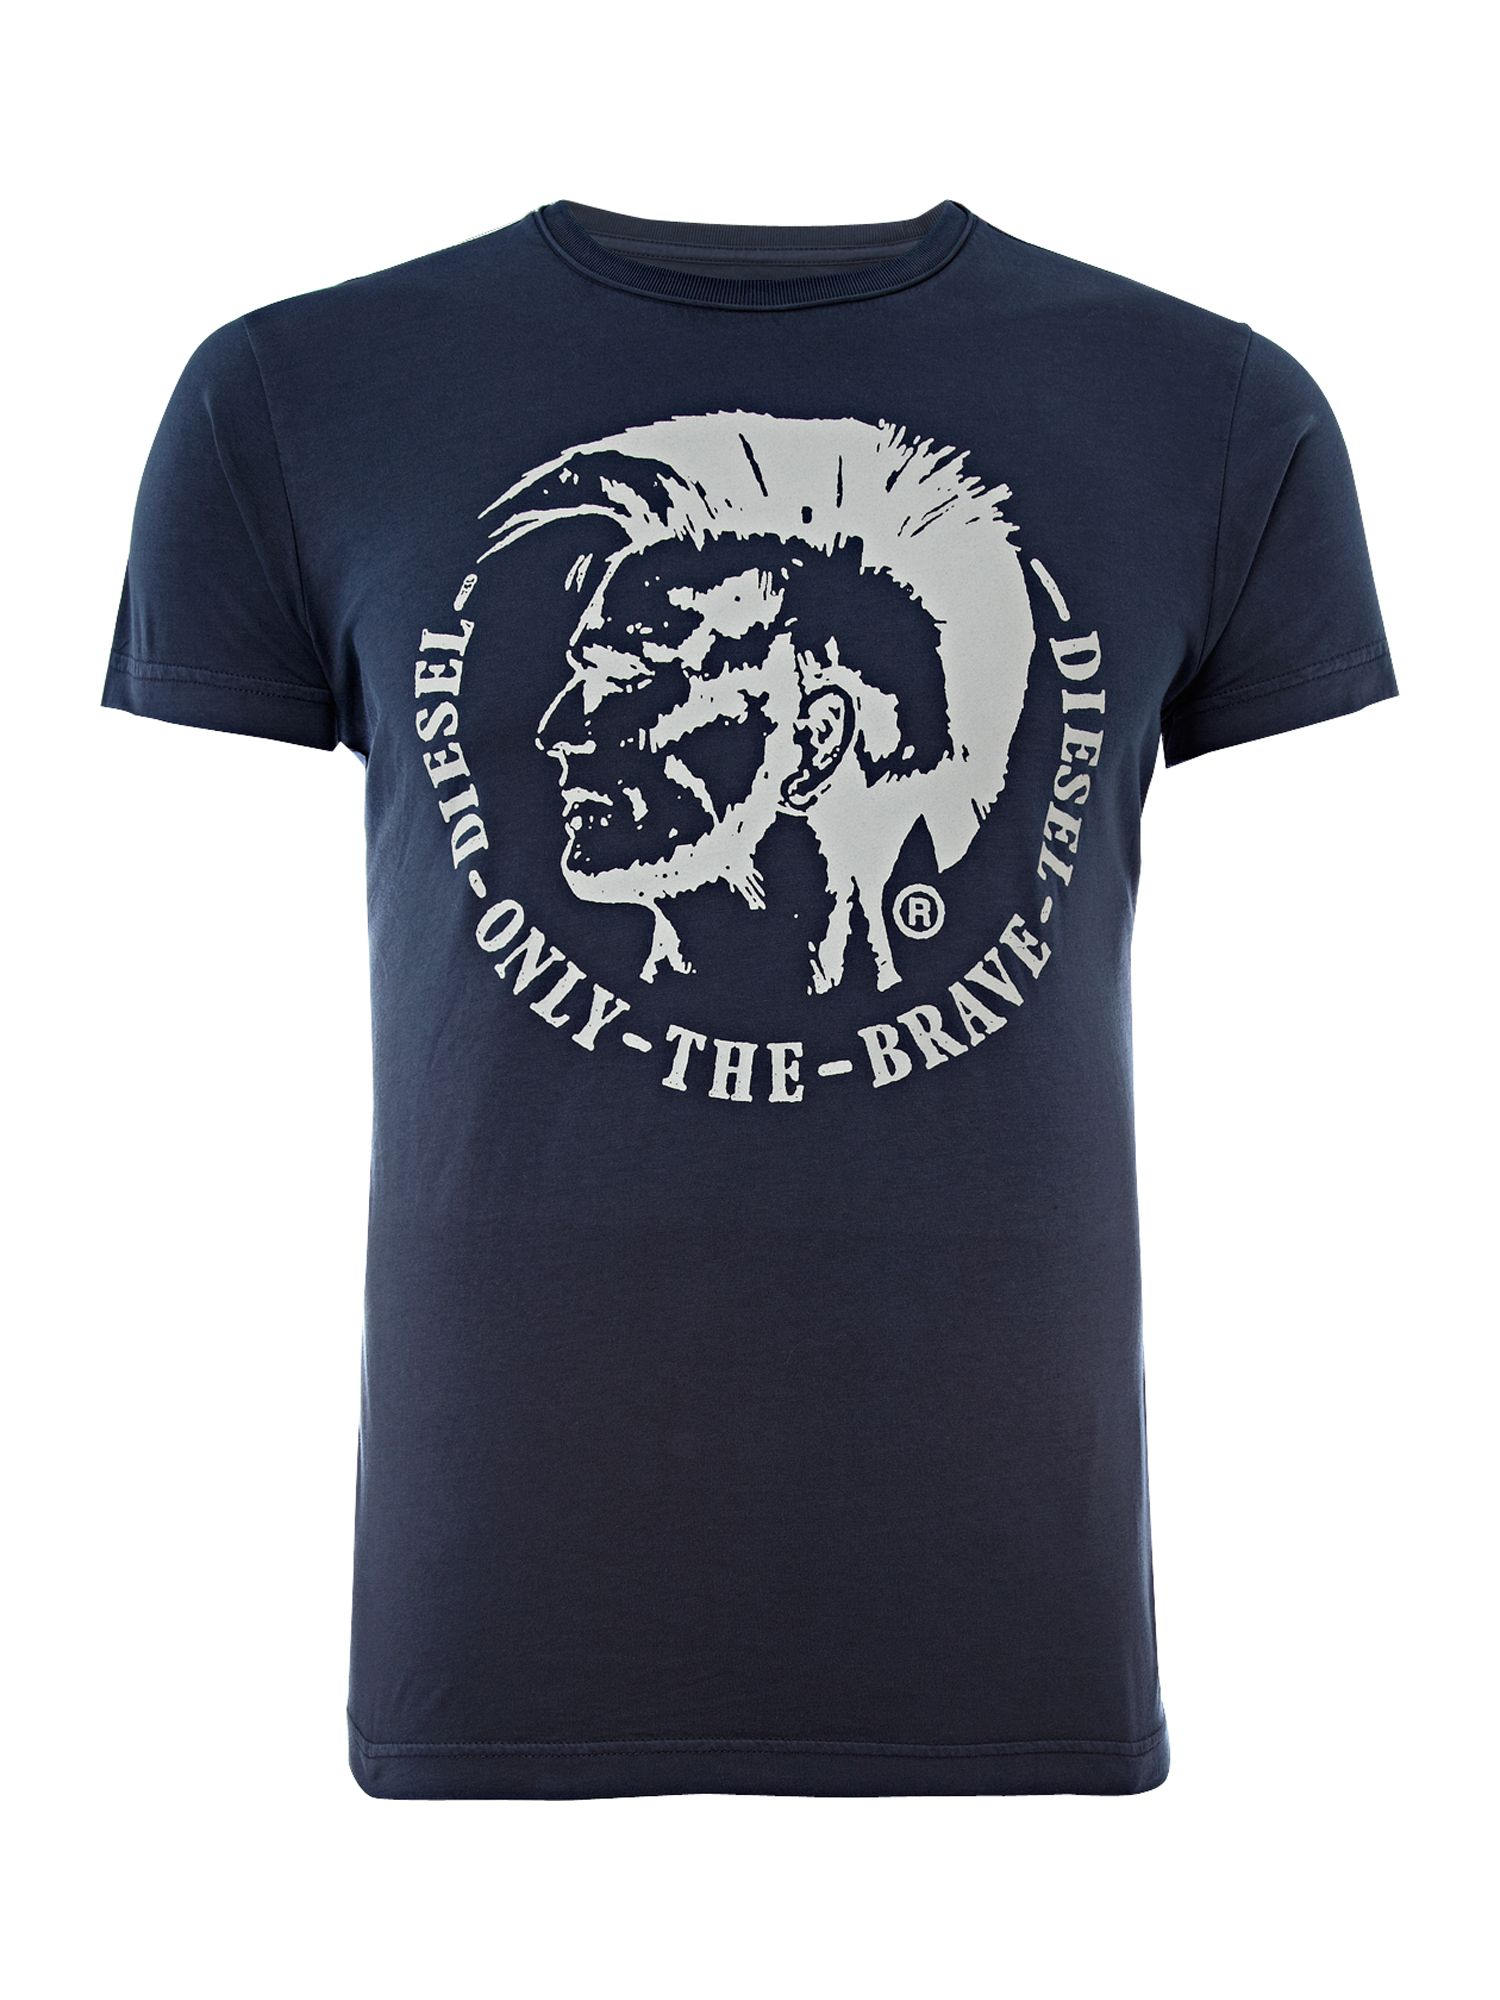 Diesel Mens Diesel Mens printed T-shirt, Navy product image